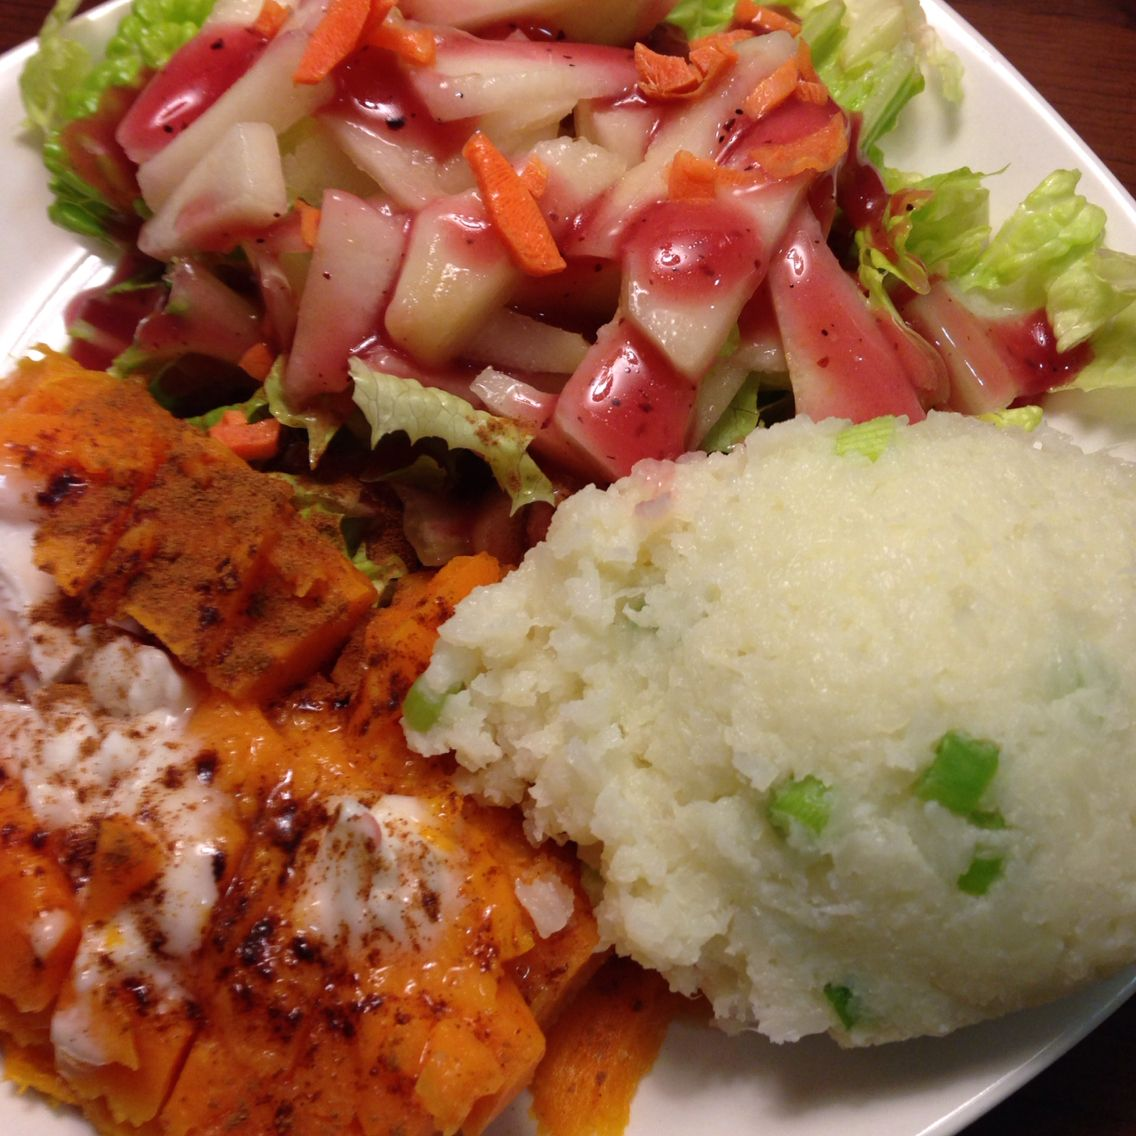 Raw Dinner with sweet potatoes, garlic cauliflower mashed potatoes, and a salad with raspberry vinaigrette dressing.